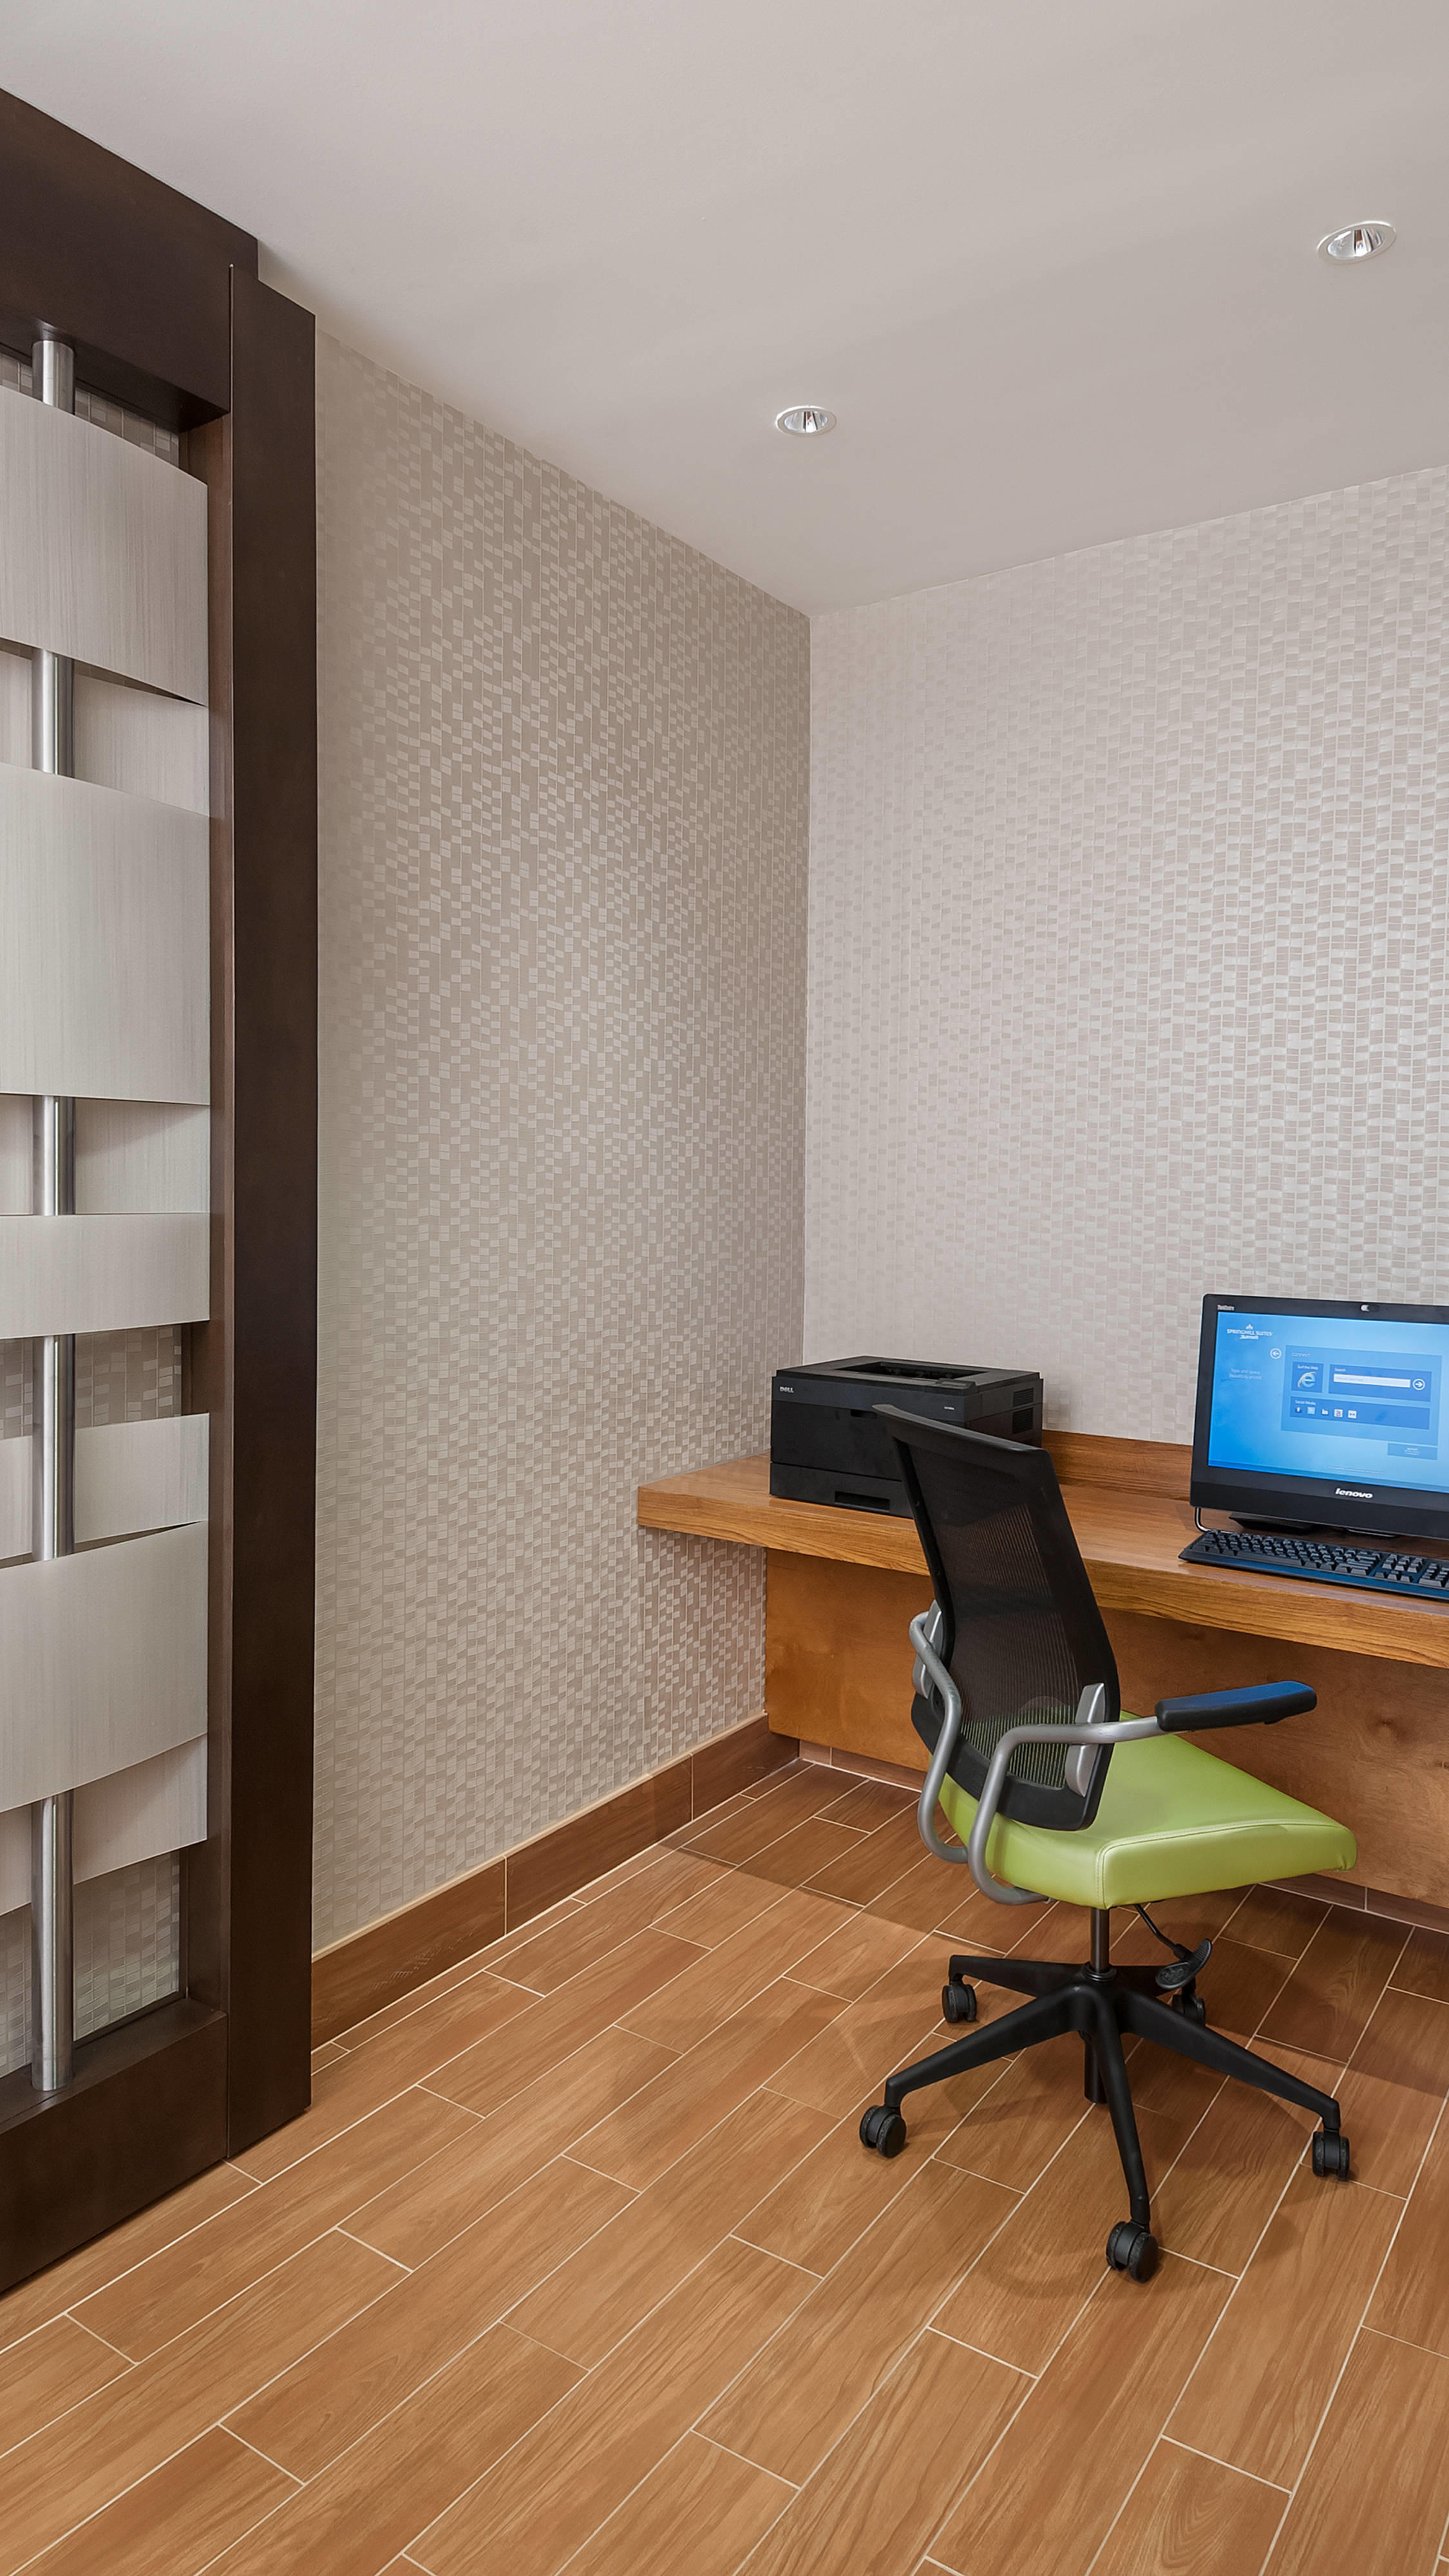 SpringHill Suites by Marriott Baton Rouge South image 10